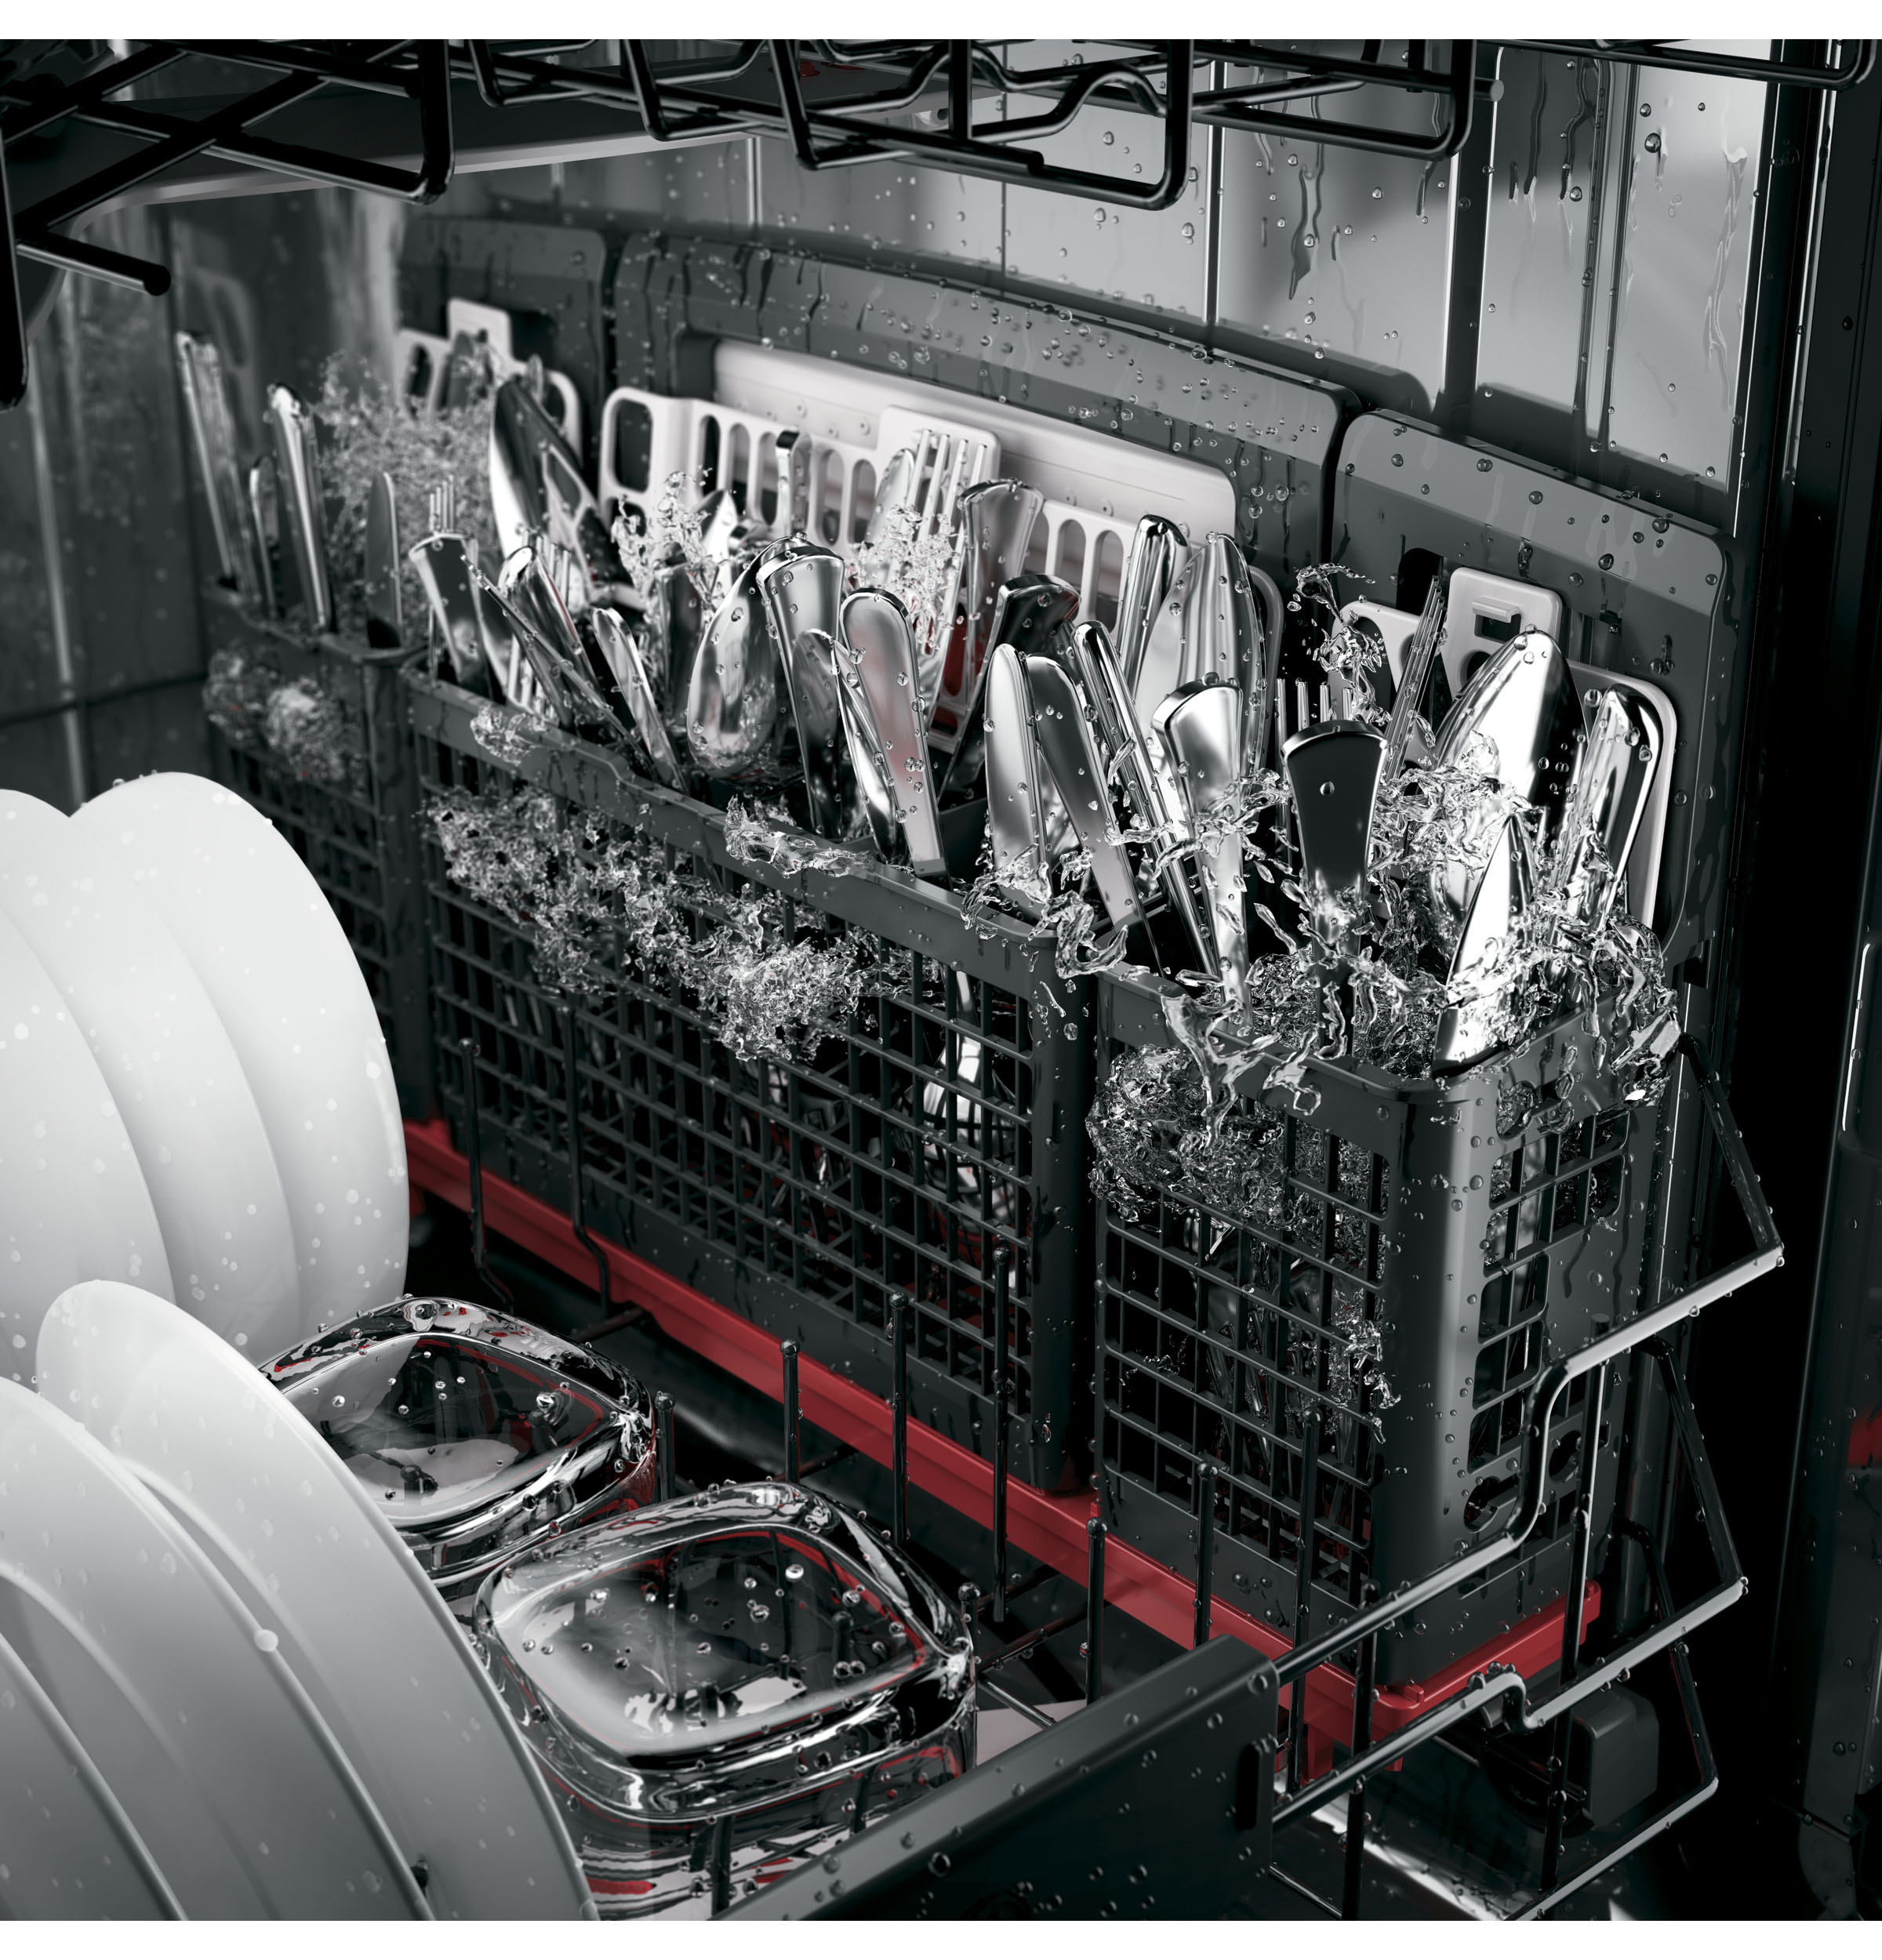 Model: PDT855SSJSS | GE Profile™ Stainless Steel Interior Dishwasher with Hidden Controls